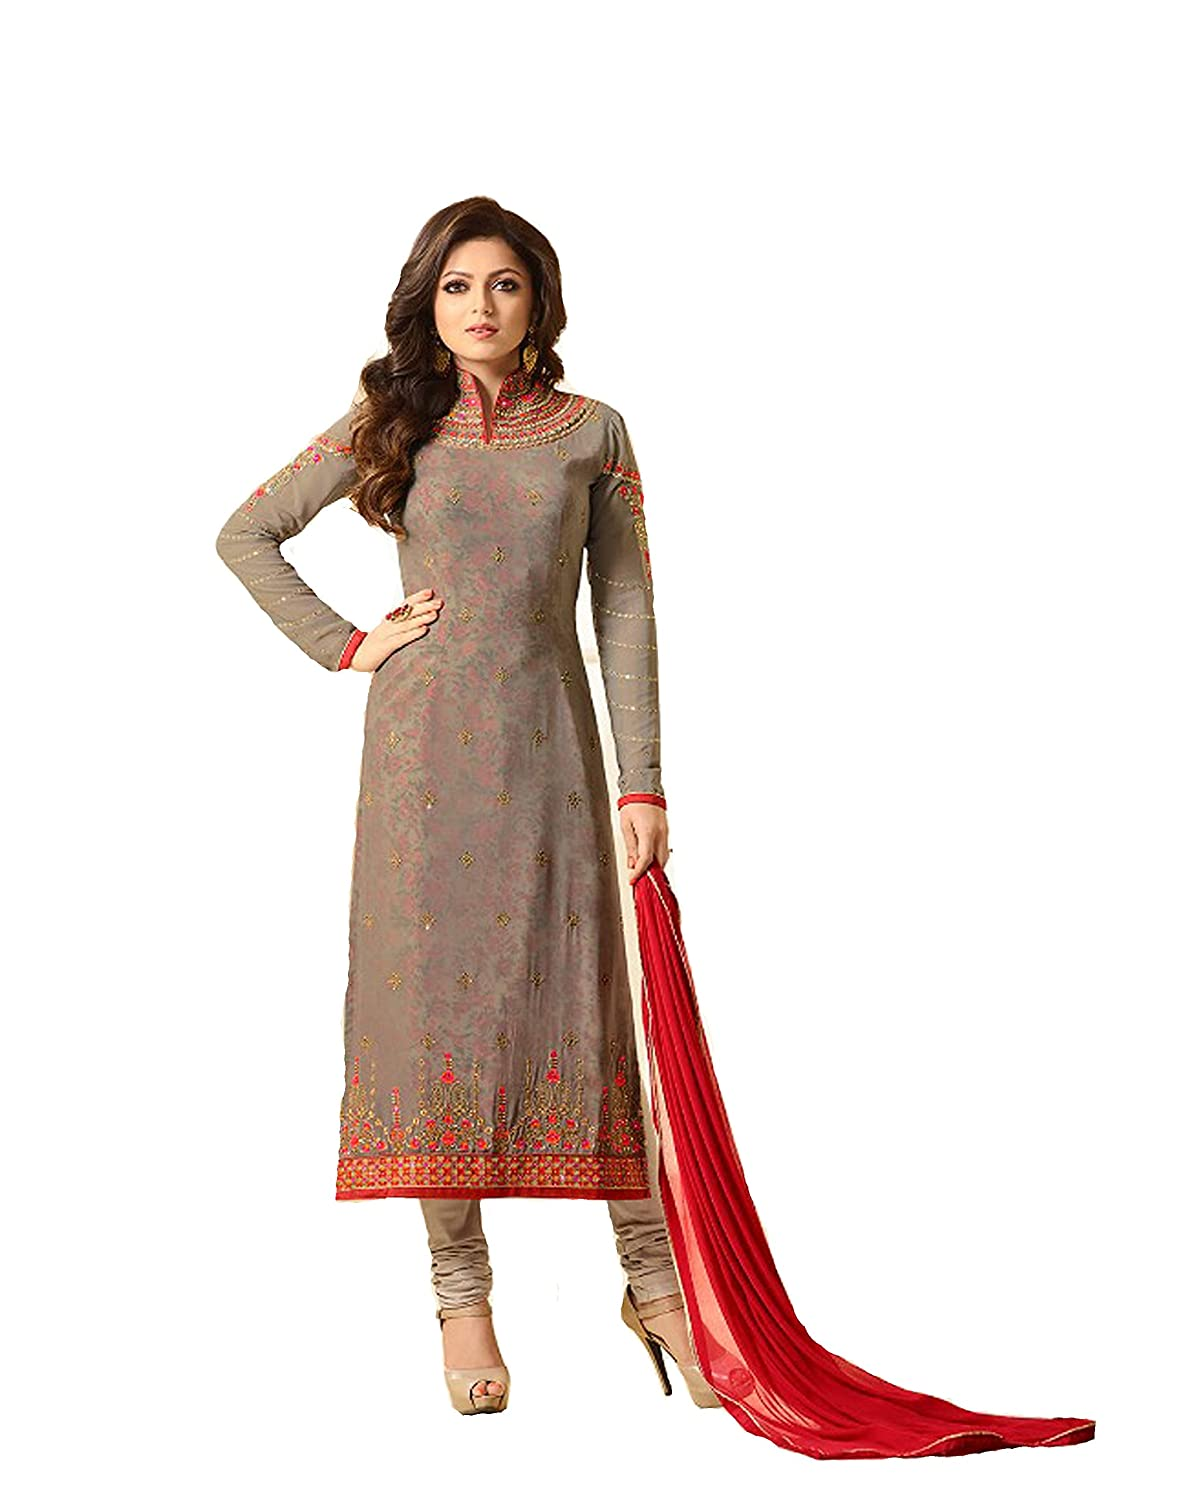 Delisa Indian/Pakistani Fashion Salwar Kameez for Women 03